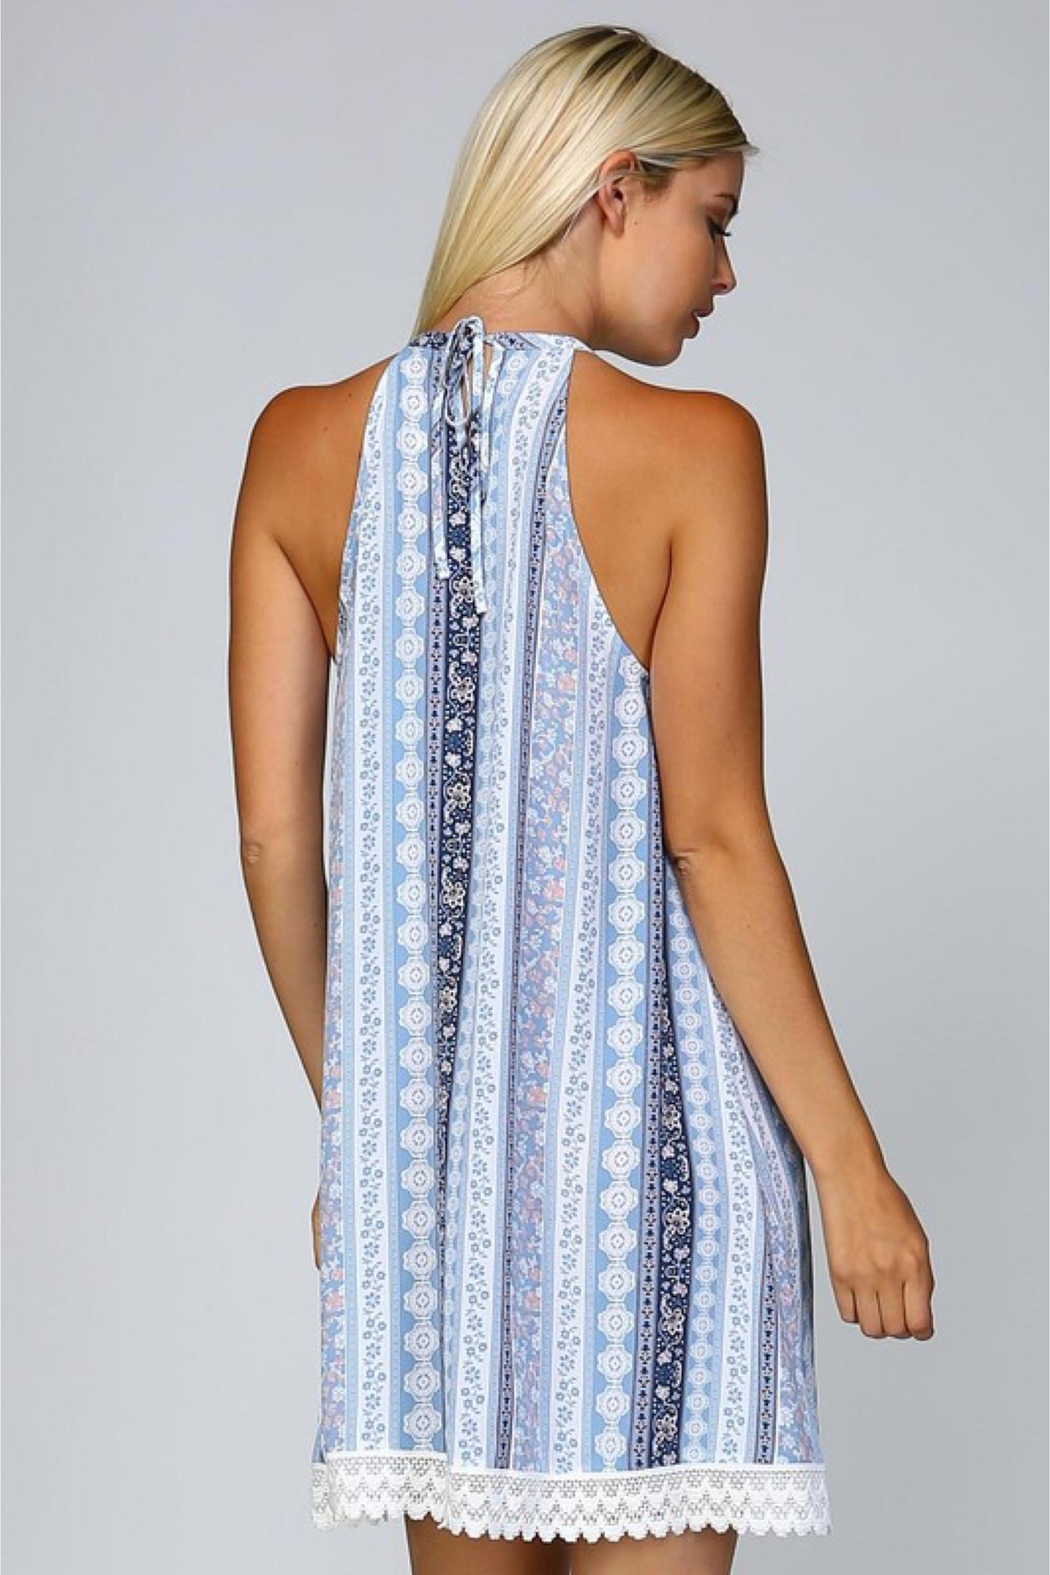 People Outfitter Blue Print Dress - Side Cropped Image